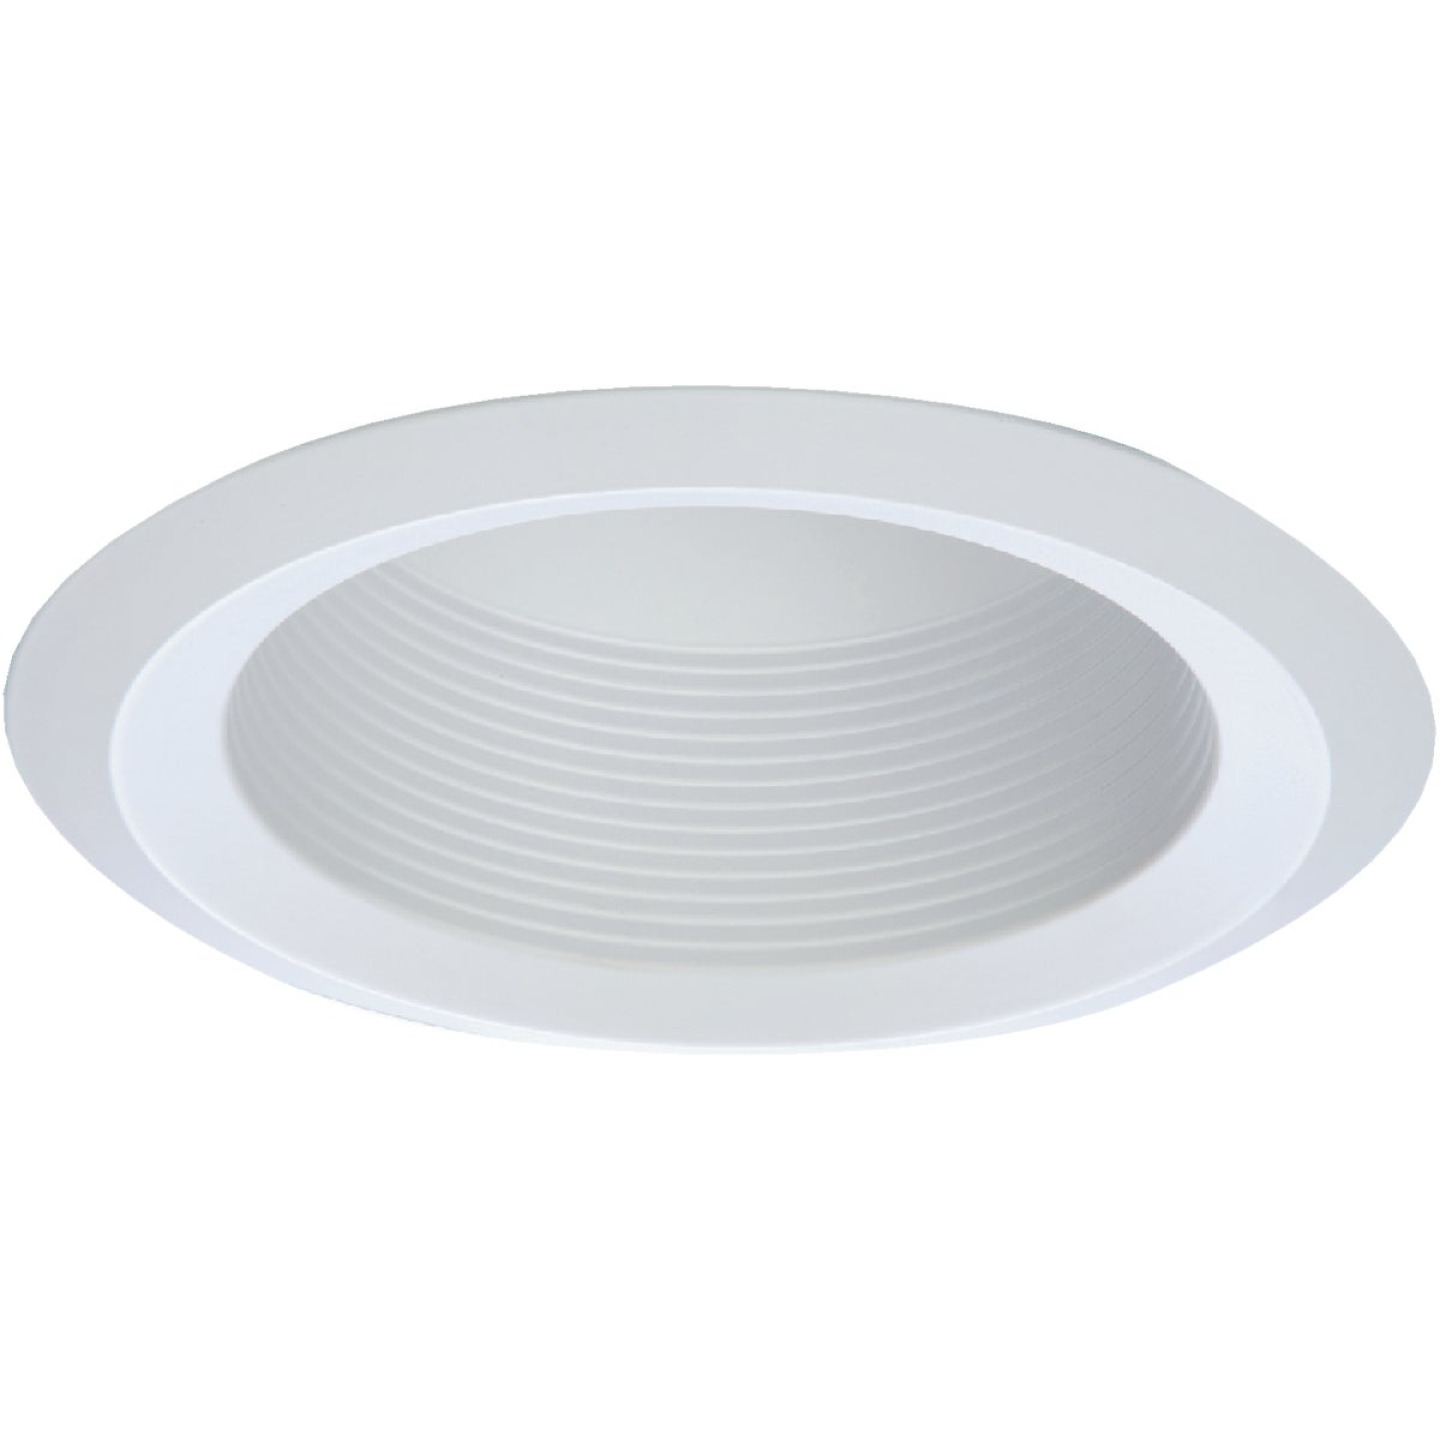 Halo 6 In. White Cone Baffle with Self-Flange Recessed Light Fixture Trim Image 1